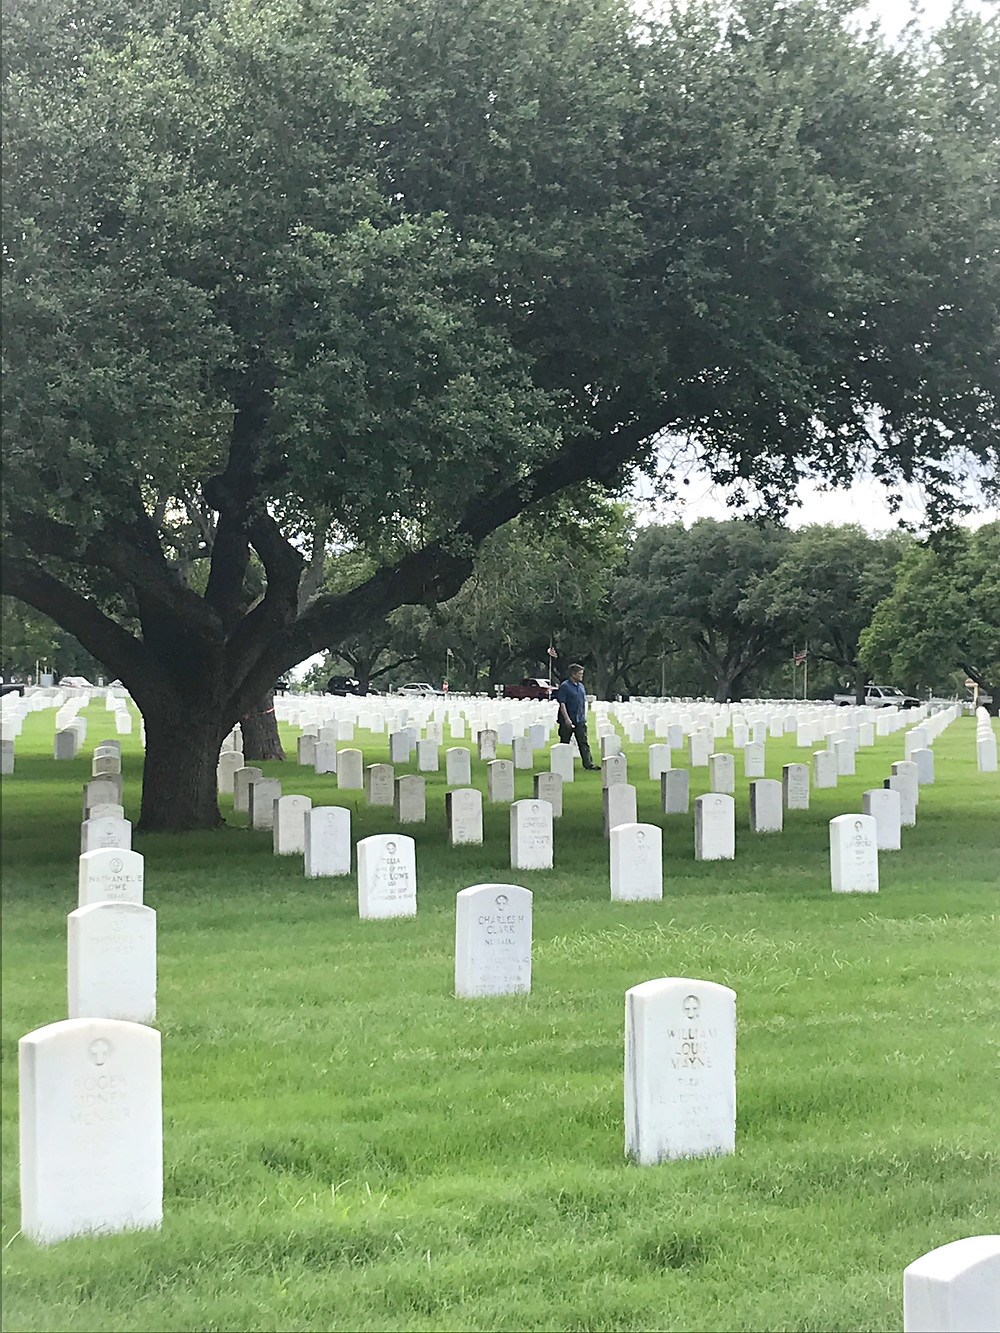 Retired US Army Officer L. Nicholas Smith walks among military graves headstones under a live oak tree photo at Fort Sam Houston National Cemetery on Memorial Day 2021